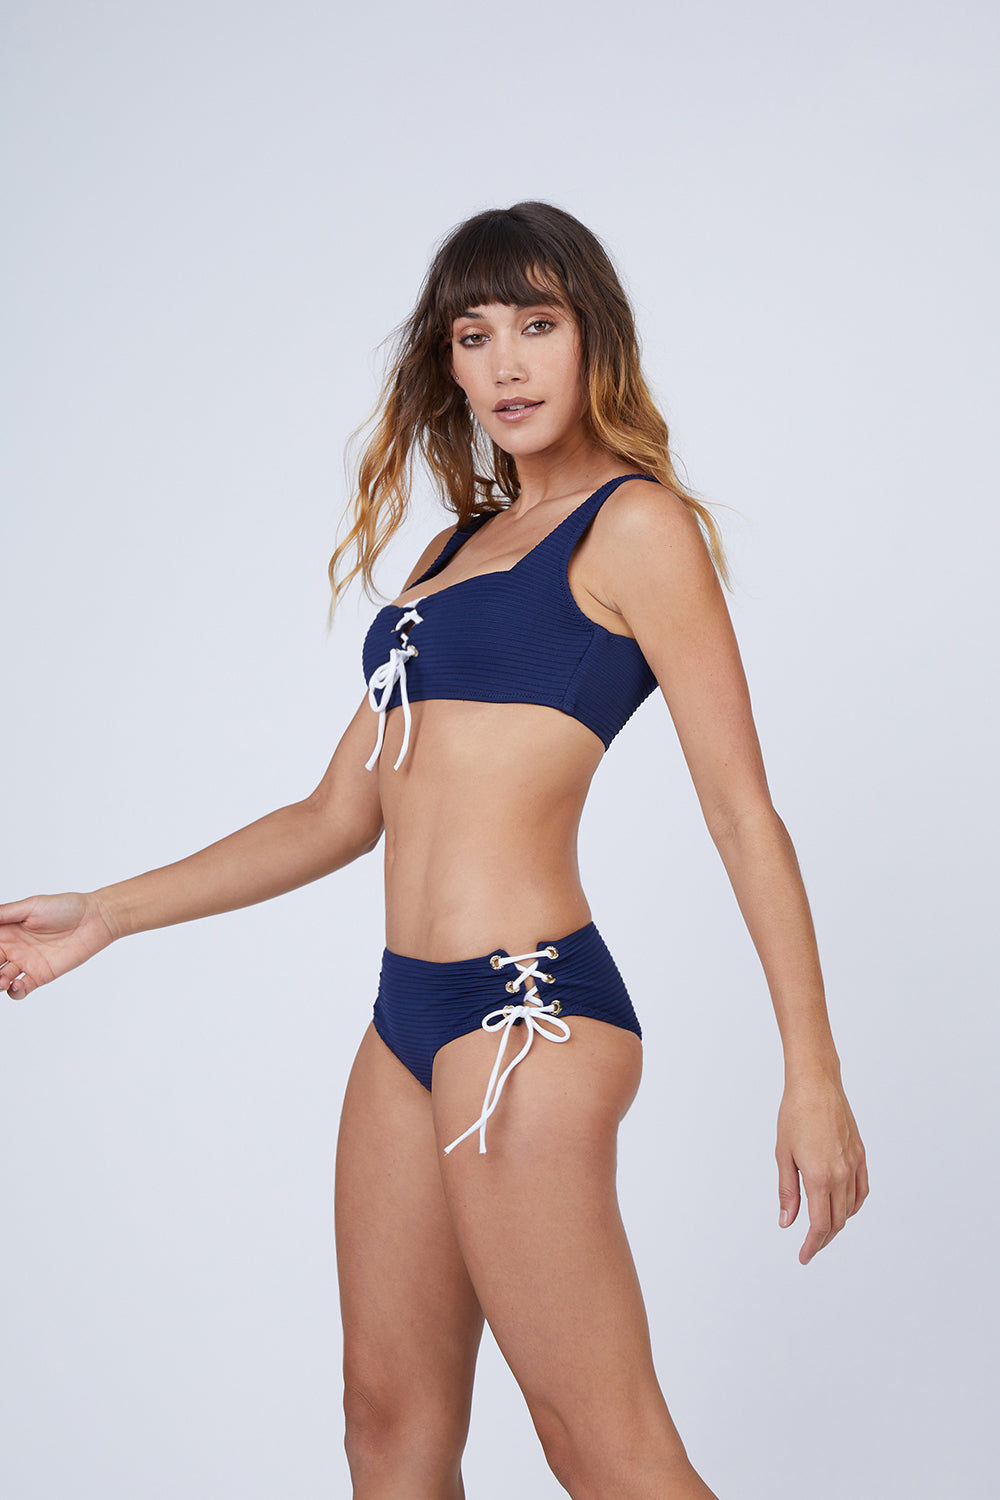 HEIDI KLEIN Ribbed Lace Up Mid Rise Bikini Bottom - Navy Blue Bikini Bottom | Navy Blue| Heidi Klein Ribbed Lace Up Mid Rise Bikini Bottom - Navy Blue. Features:  This style is cut to be High Rise and Mid Coverage. The waist and legs are elasticated for a secure, comfortable fit. Fully lined in soft lining for ultimate comfort. This high waisted style is cut with split side seams, fastened with decorative lacing. Side View